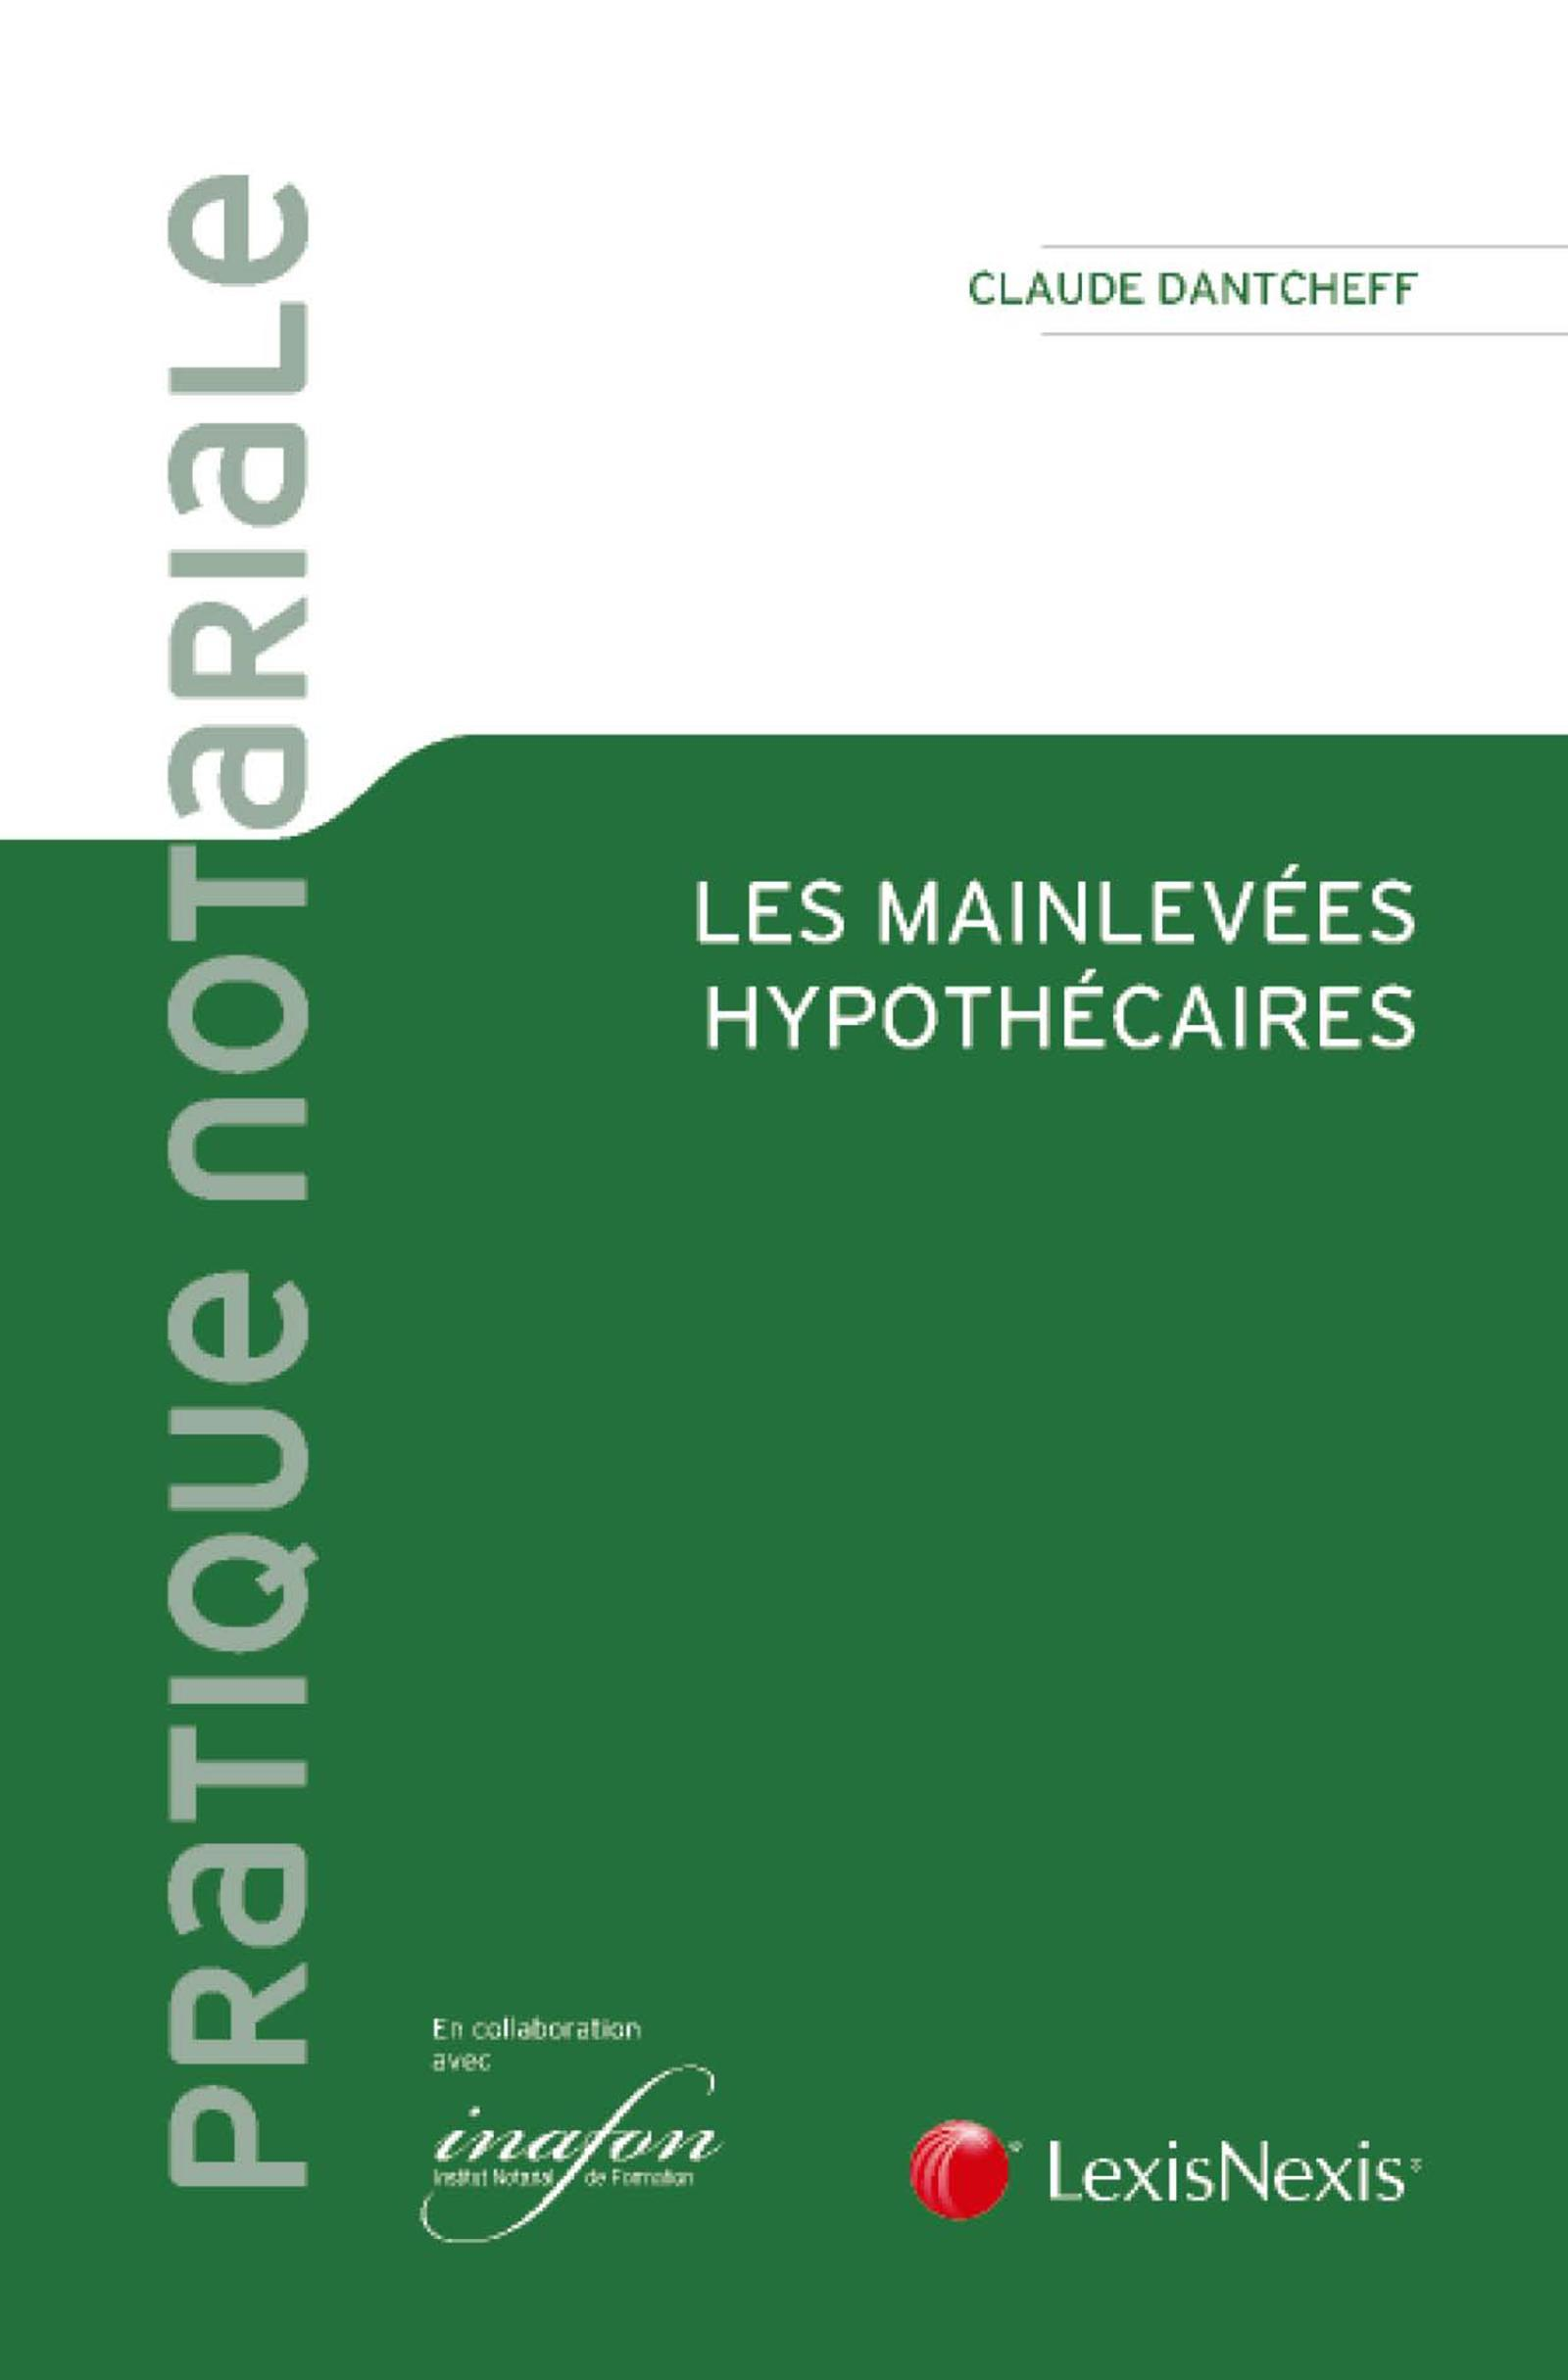 LES MAINLEVEES HYPOTHECAIRES